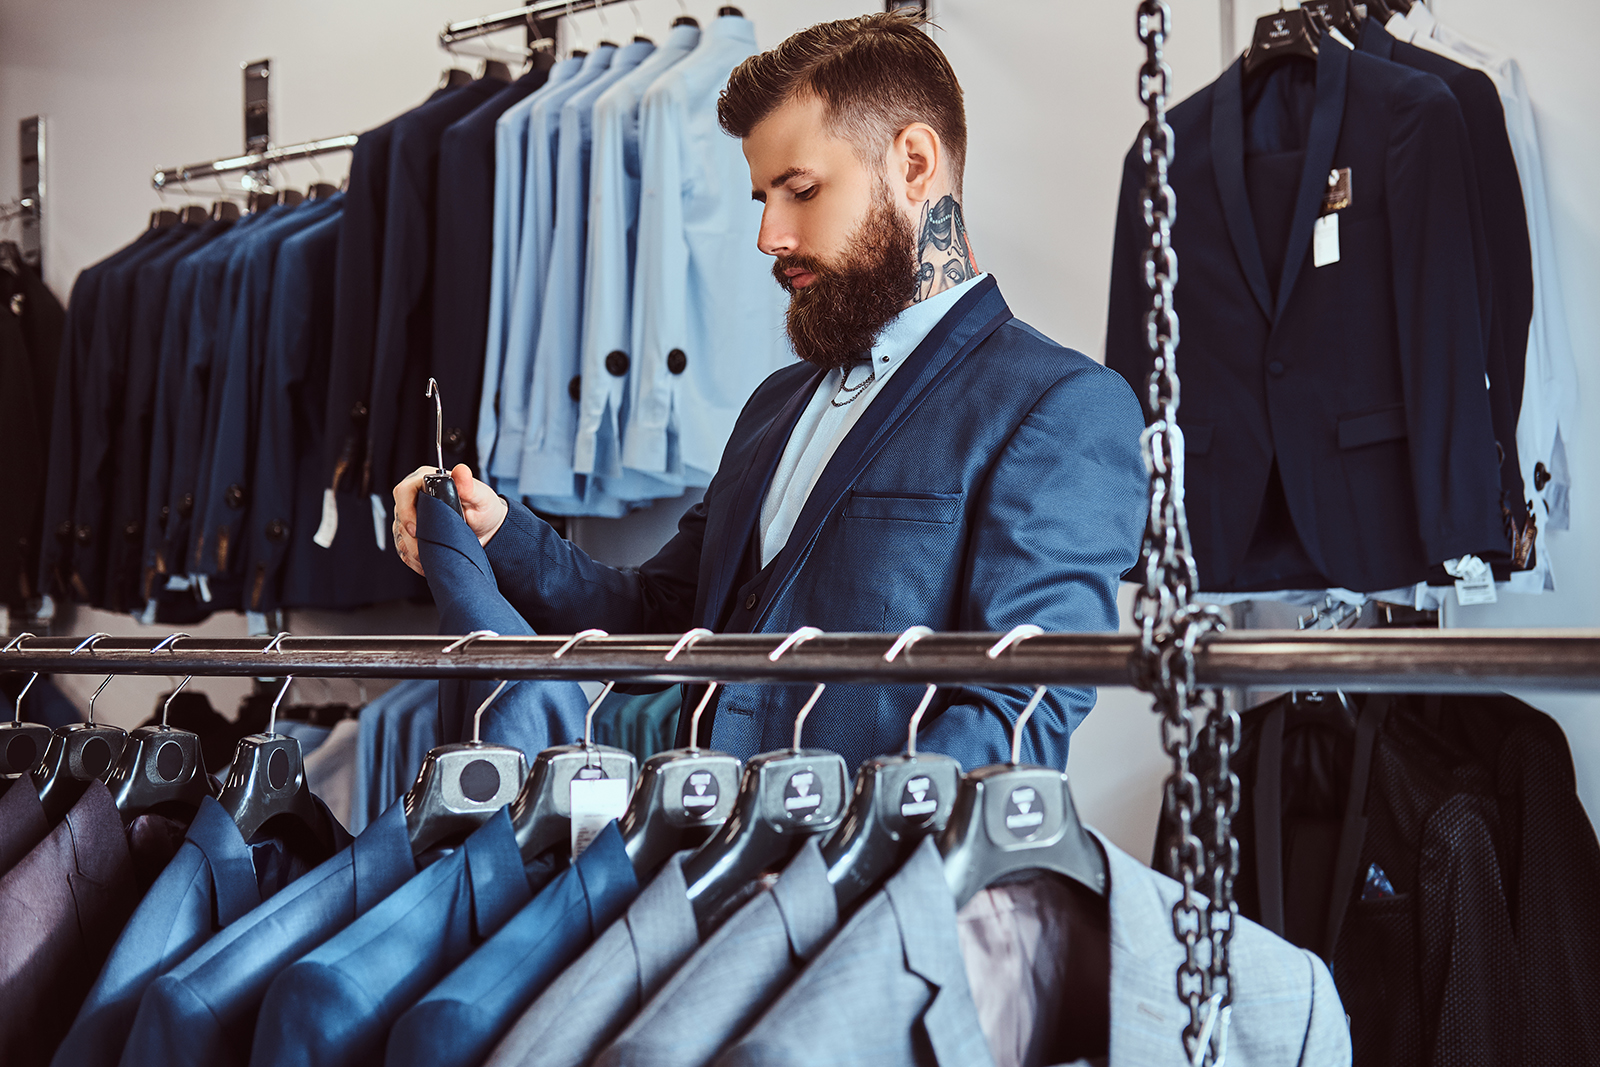 Elegantly dressed bearded male with tattoos on hands and neck chooses new costume in menswear store.